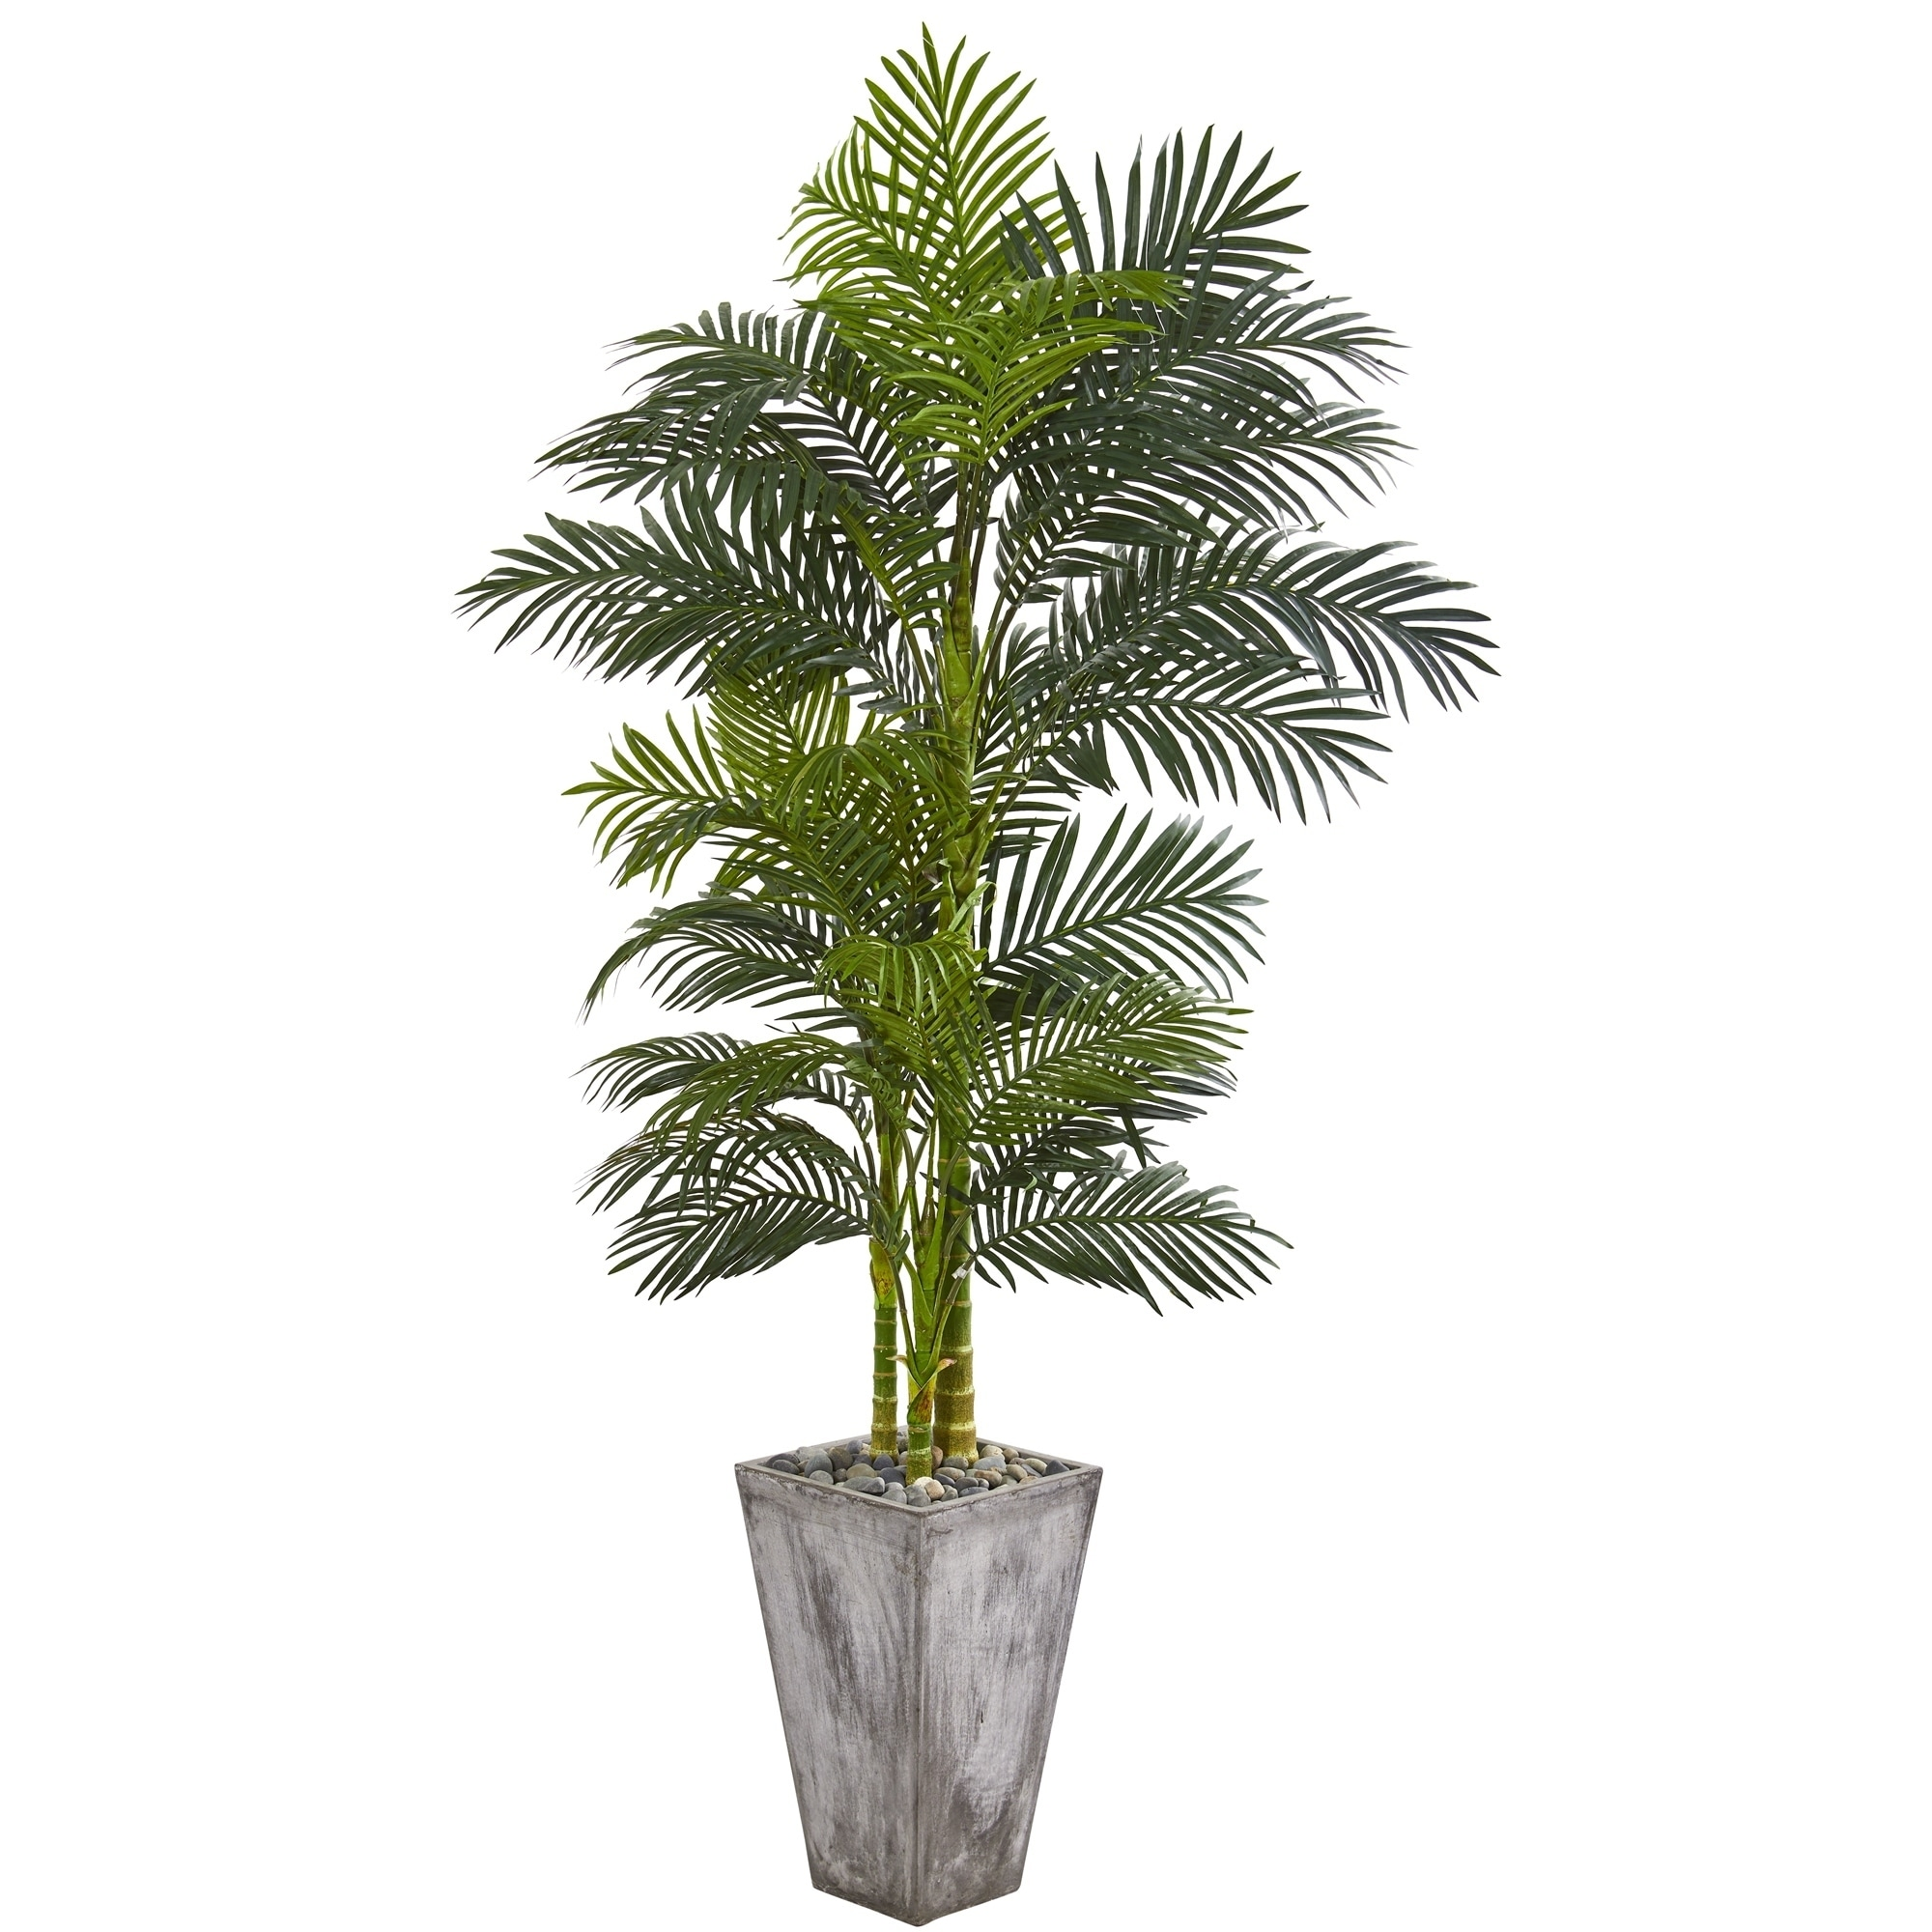 7 Golden Cane Artificial Palm Tree in Cement Planter